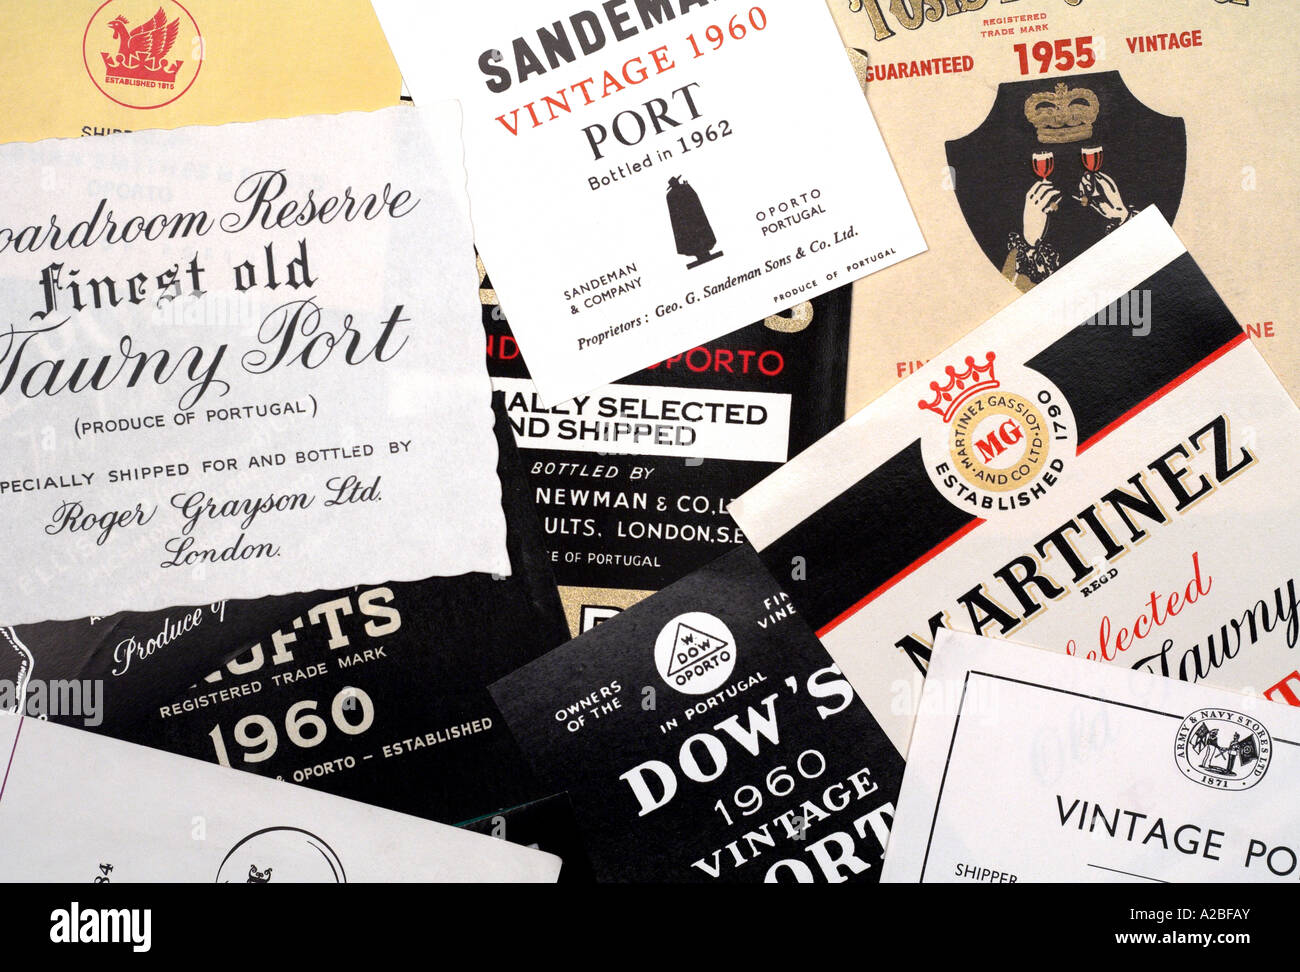 Port Bottle Labels 1950s 1960s Editorial Use onl - Stock Image